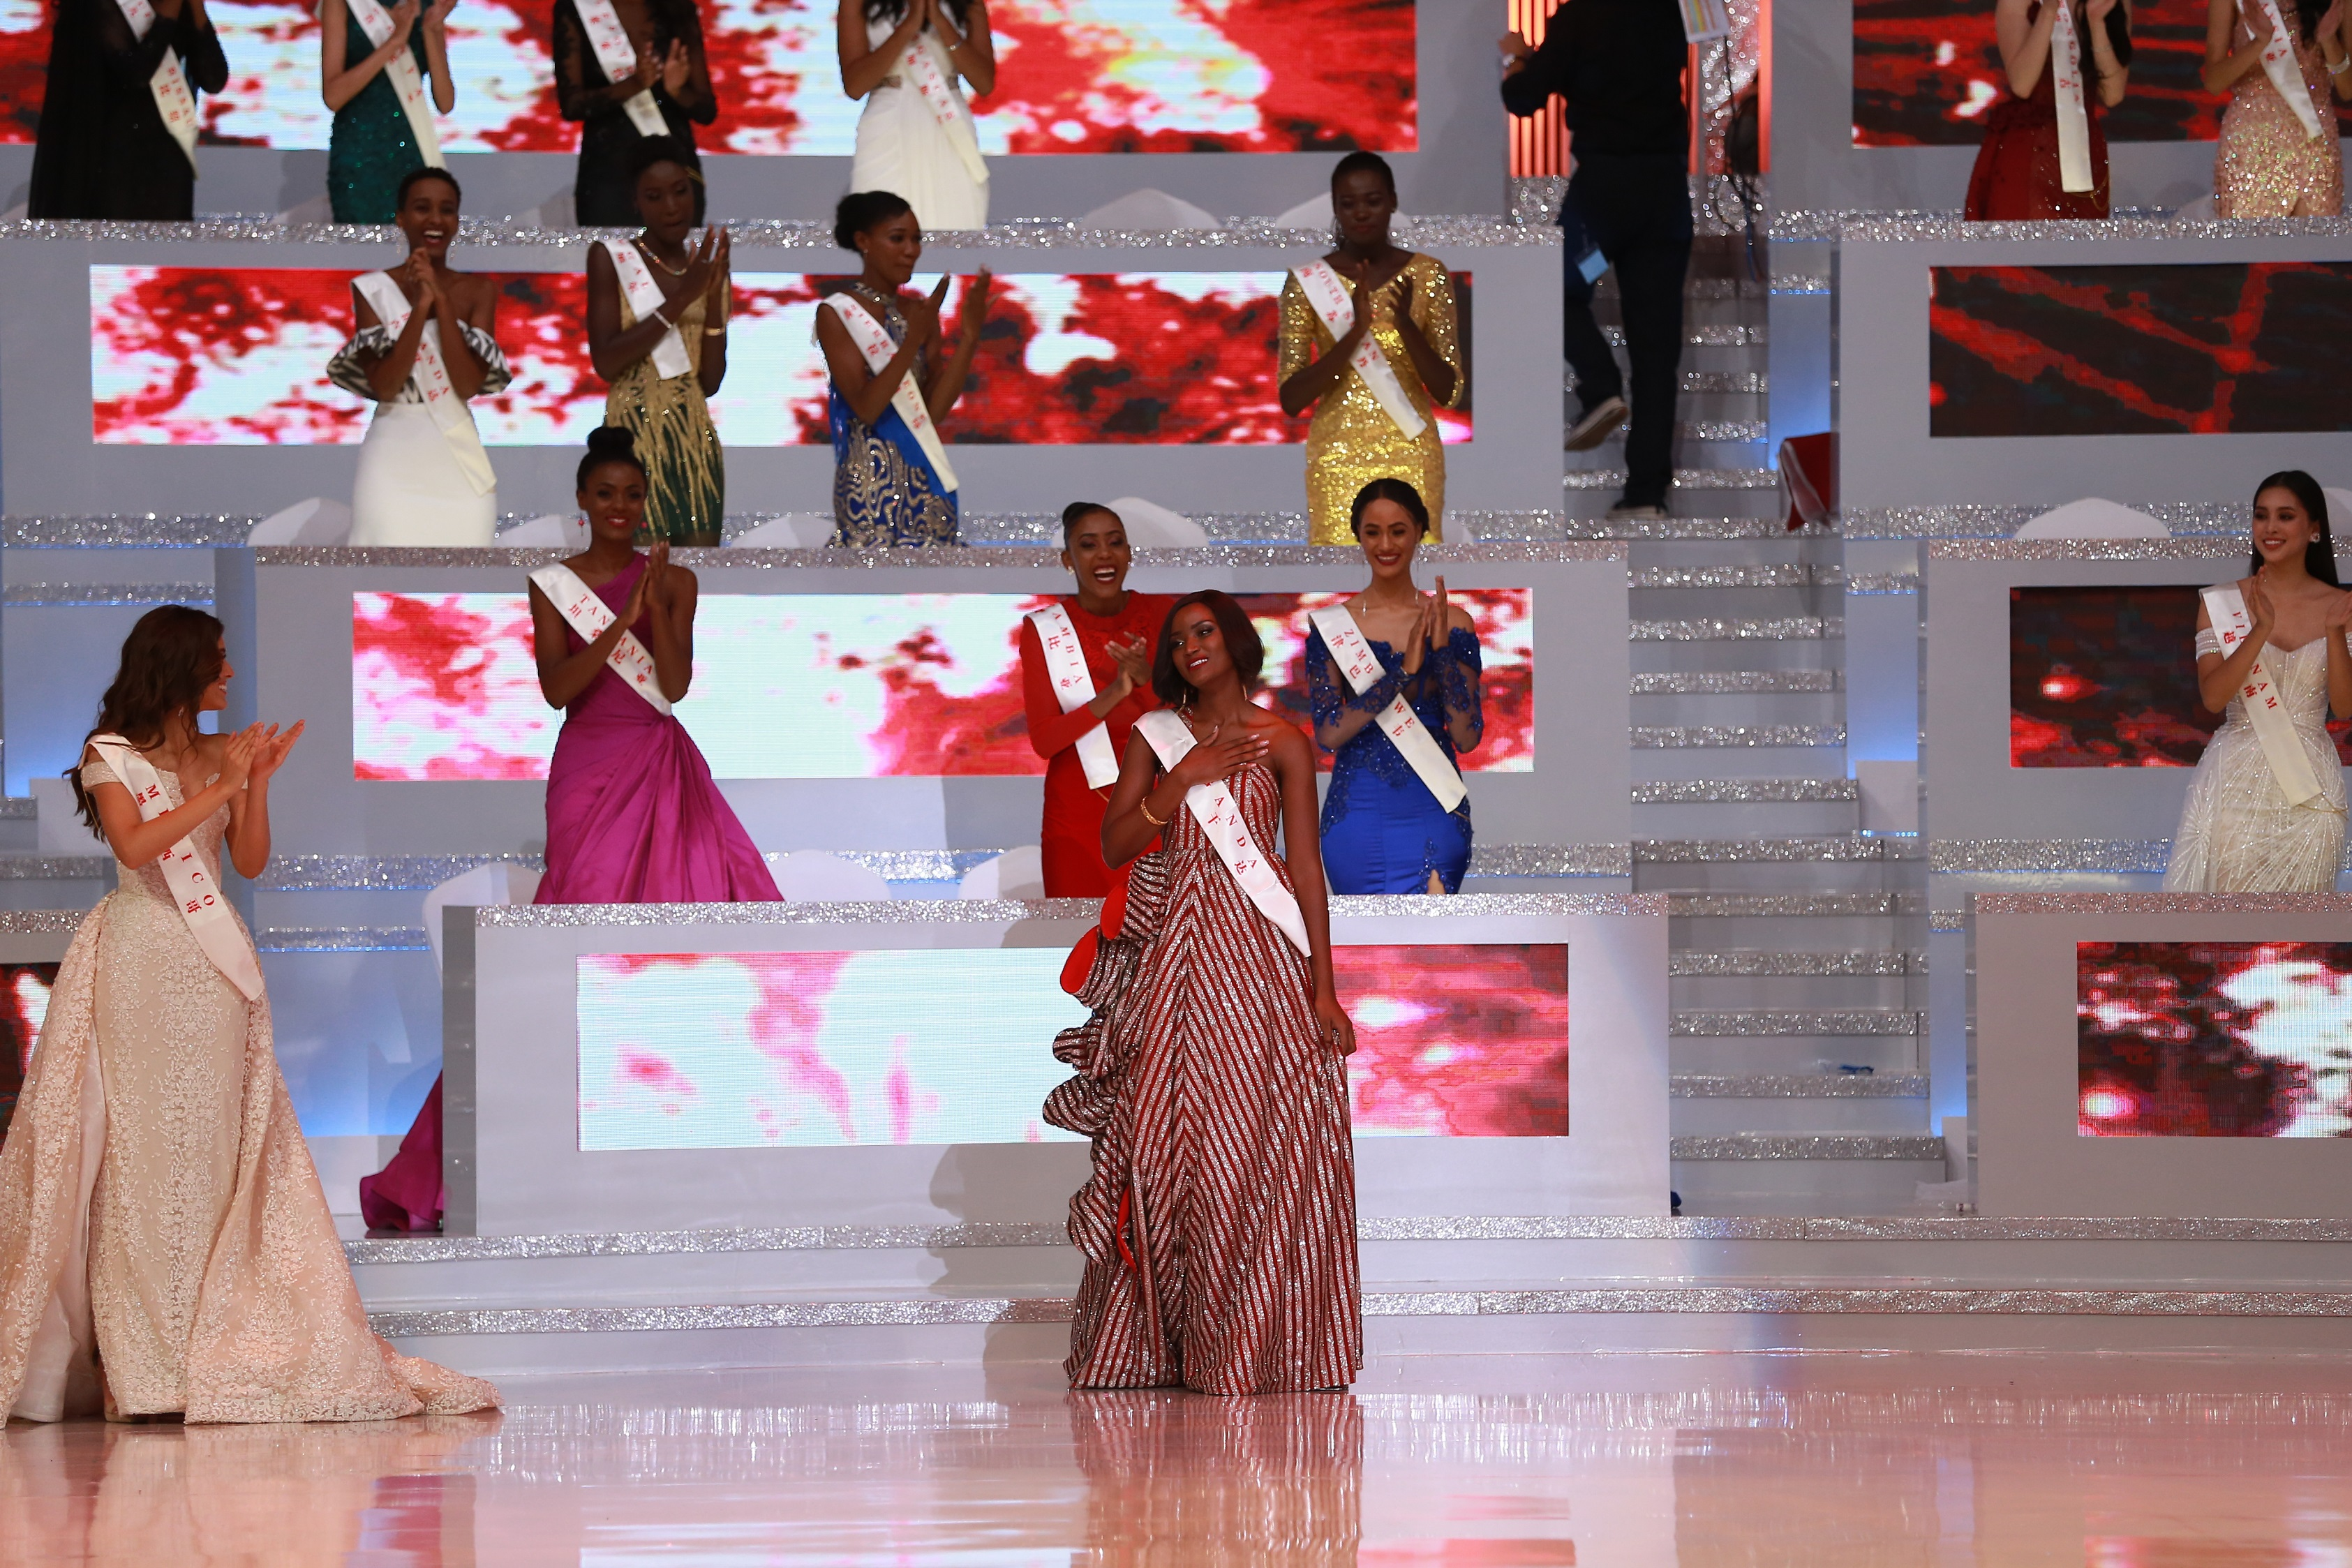 ✪✪✪ MISS WORLD 2018 - COMPLETE COVERAGE  ✪✪✪ - Page 30 JACK8621_resize